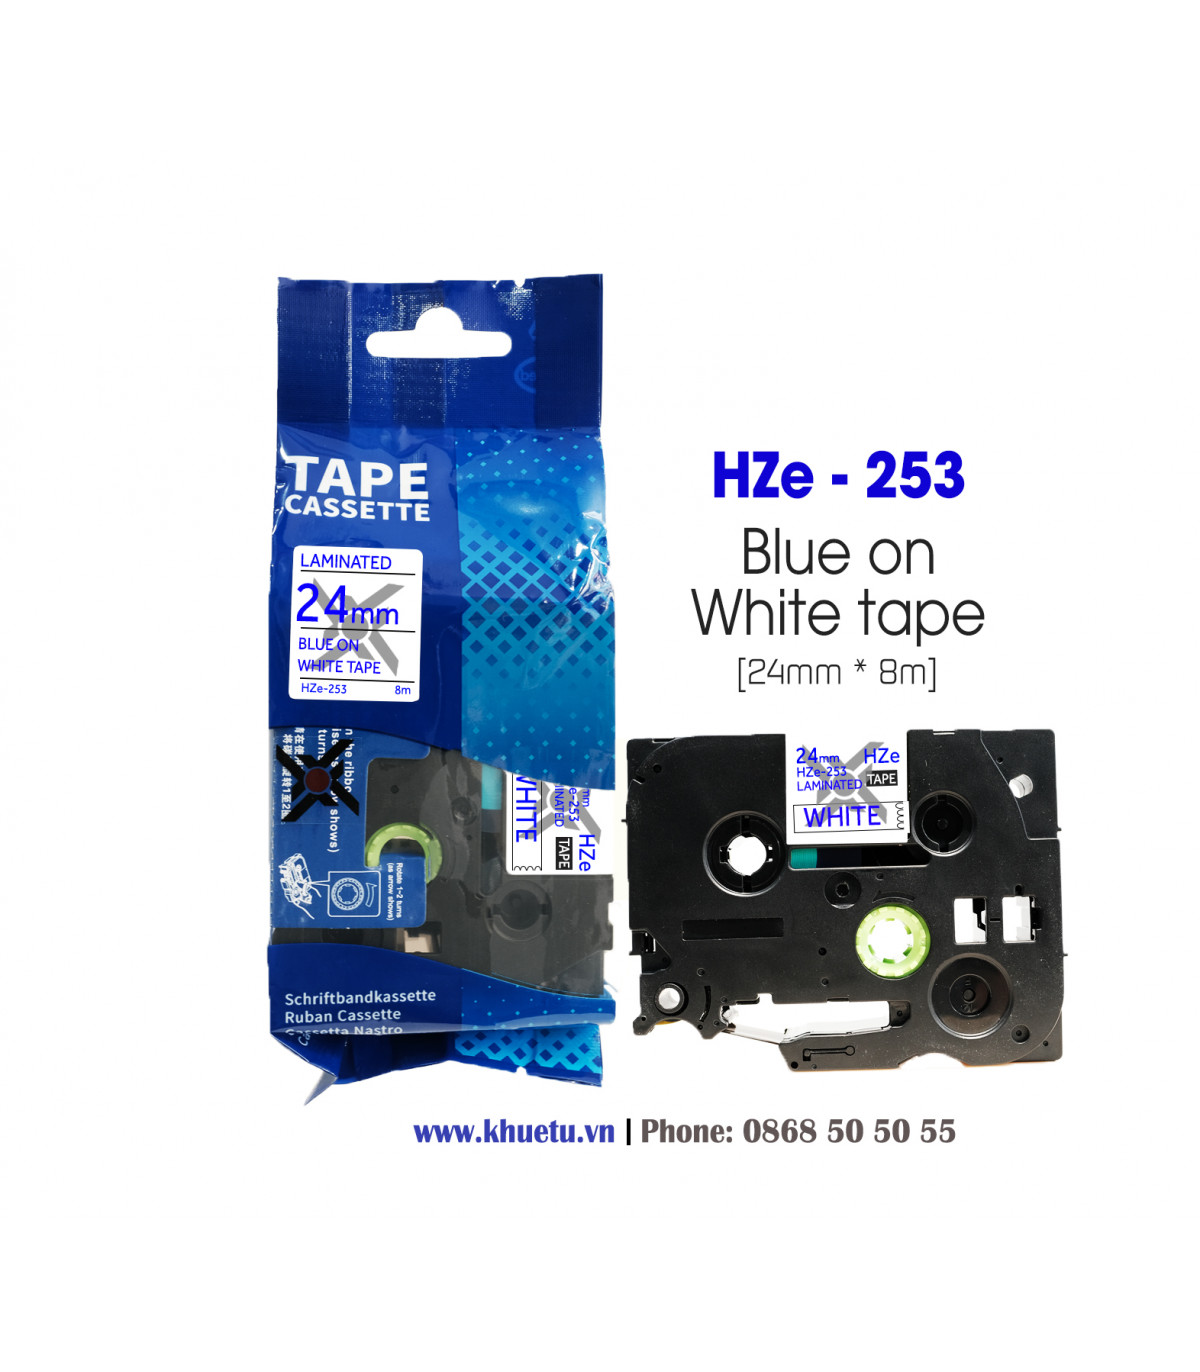 Nhãn in HZe-253 (TZe-253, TZ2-253), 24mm x 8m, Blue on White